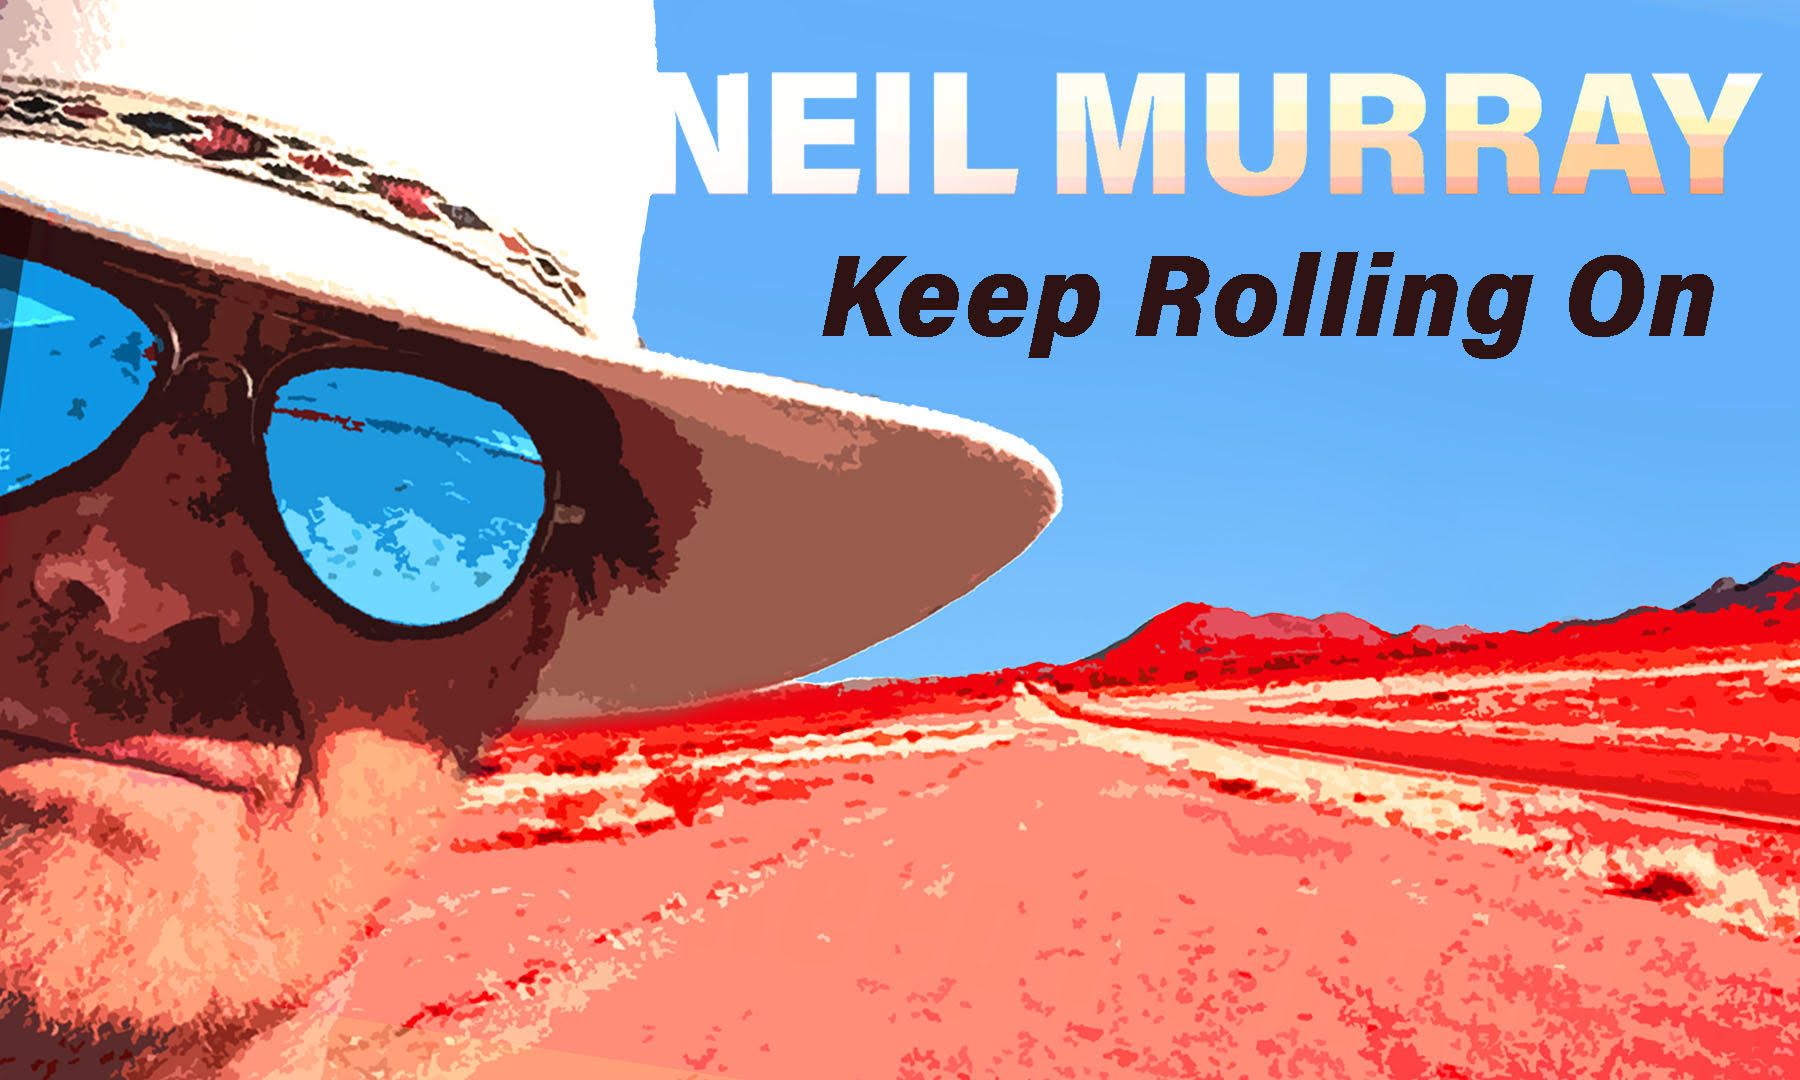 Keep Rolling On - Neil Murray single release